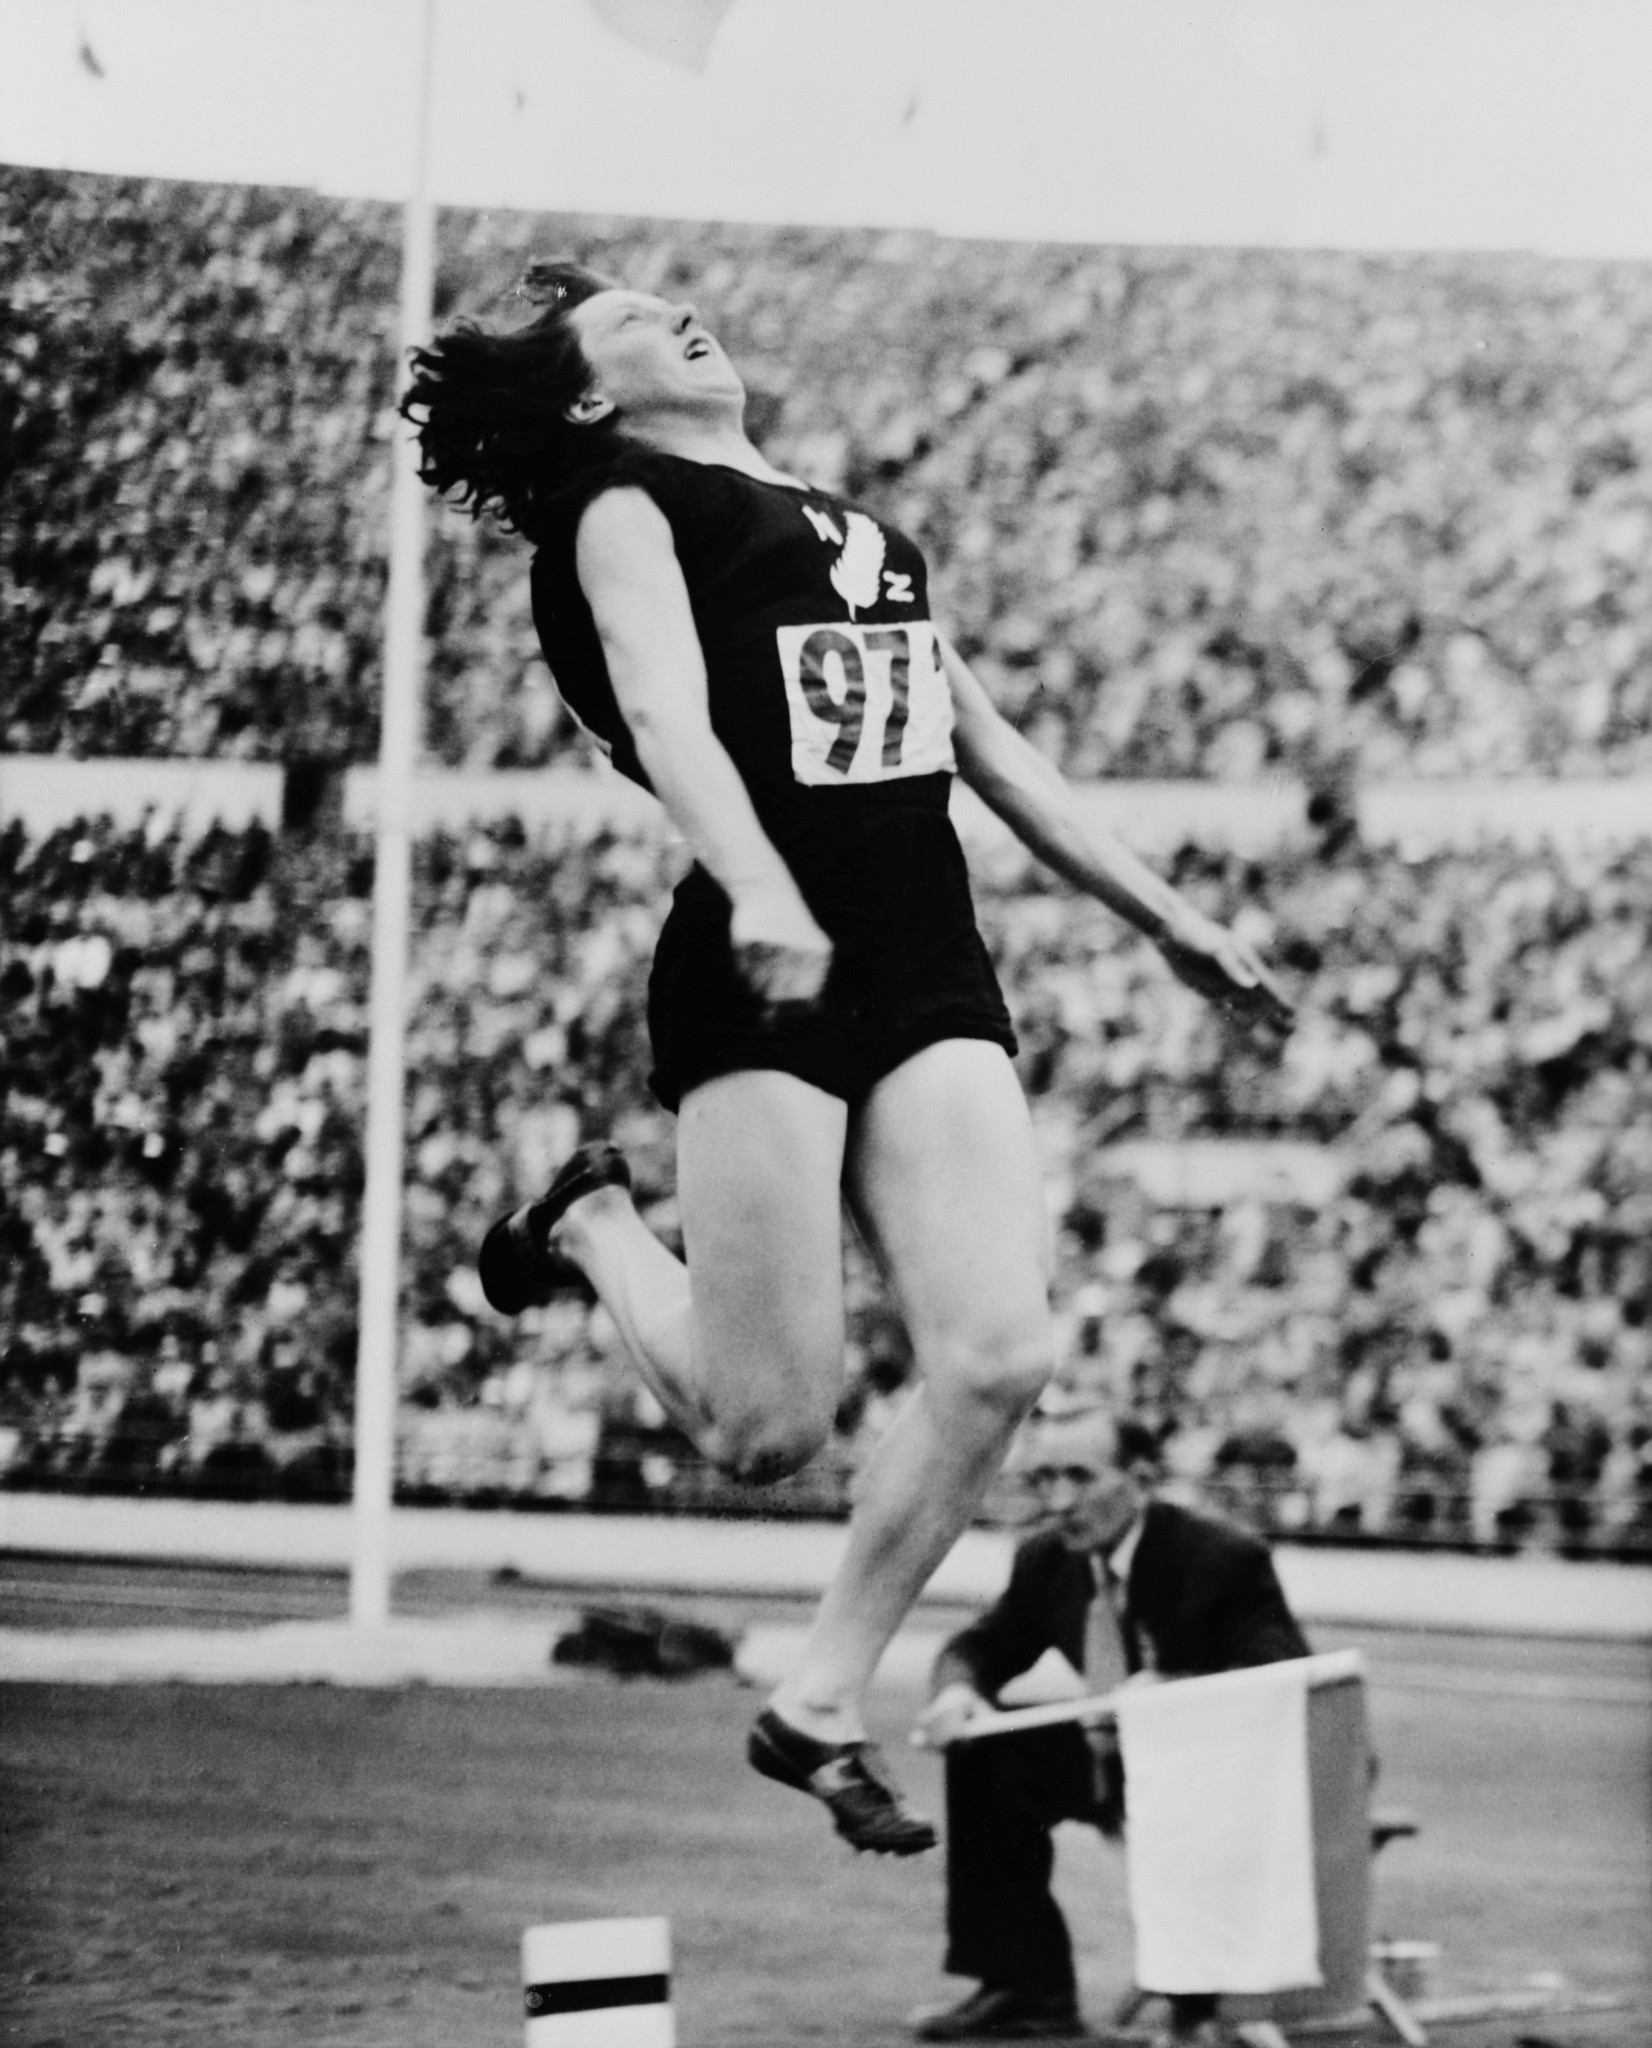 New Zealand's Yvette Williams, who dramatically won the long jump gold medal at the 1952 Olympic Games in Helsinki, has died at the age of 89 ©Getty Images